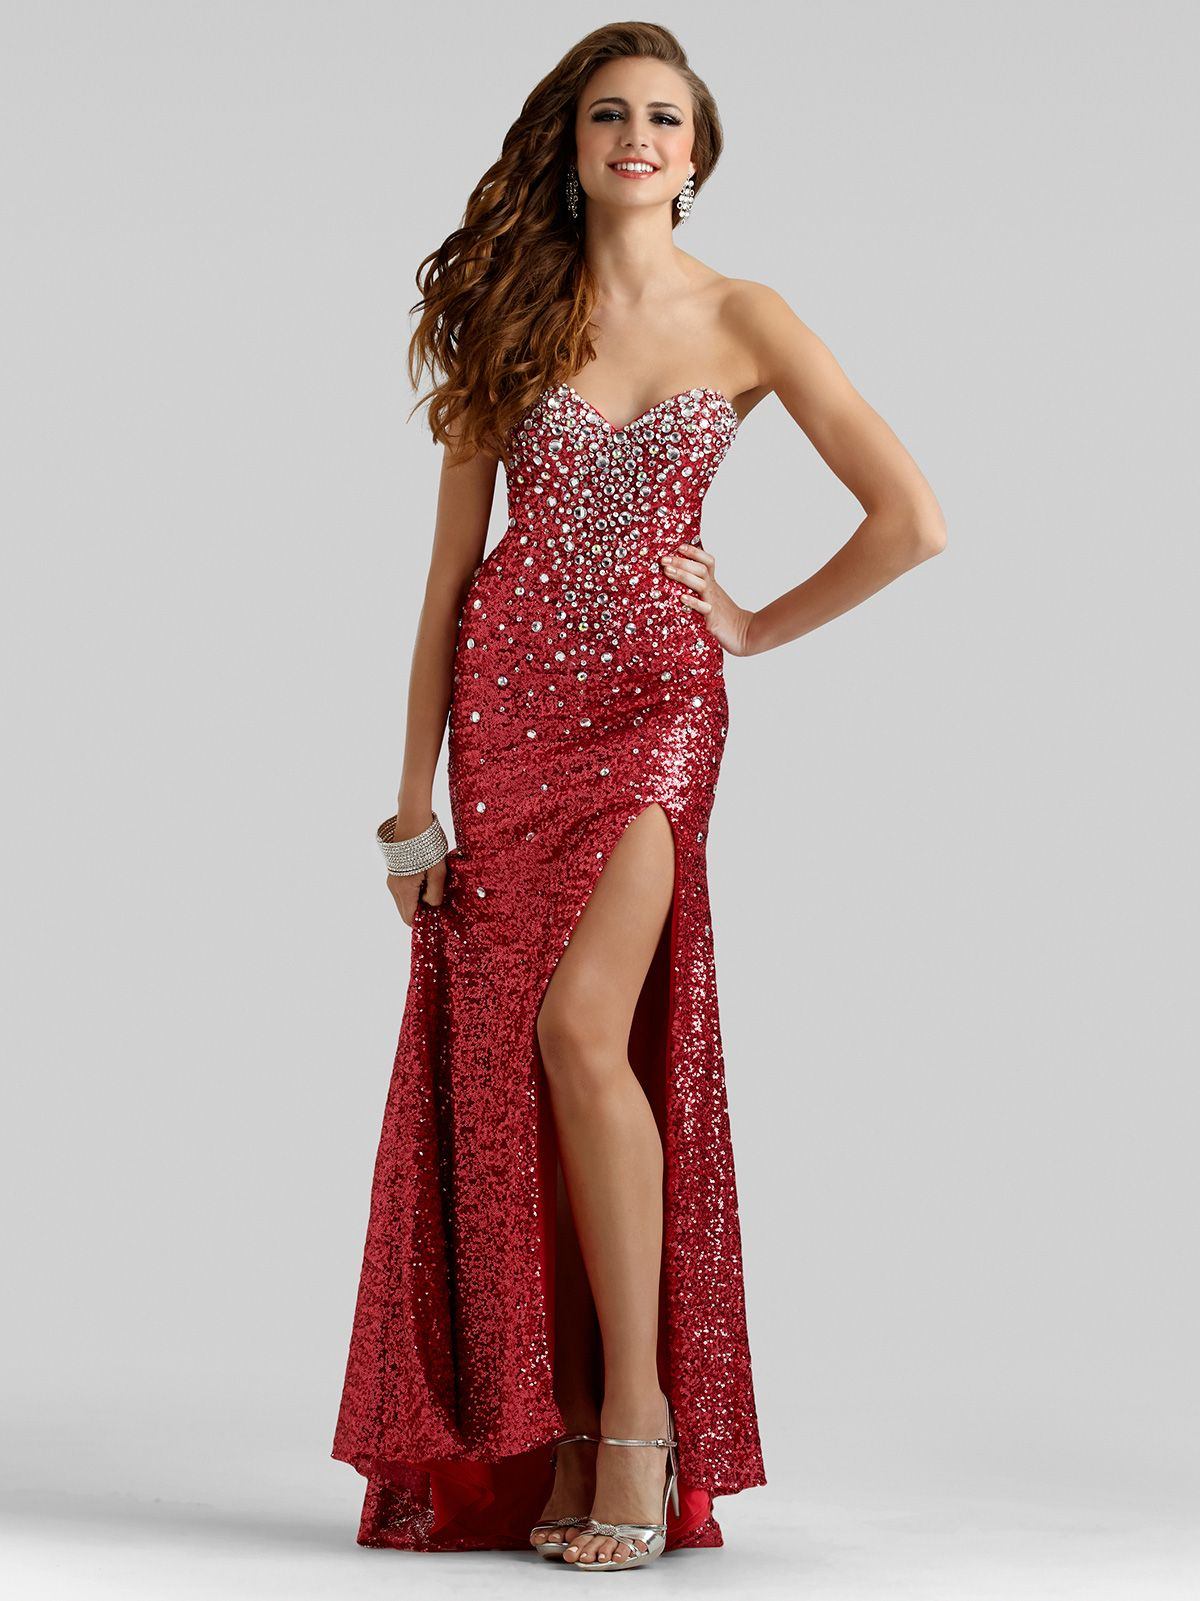 This stunning clarisse prom dress will no doubt turn heads and make